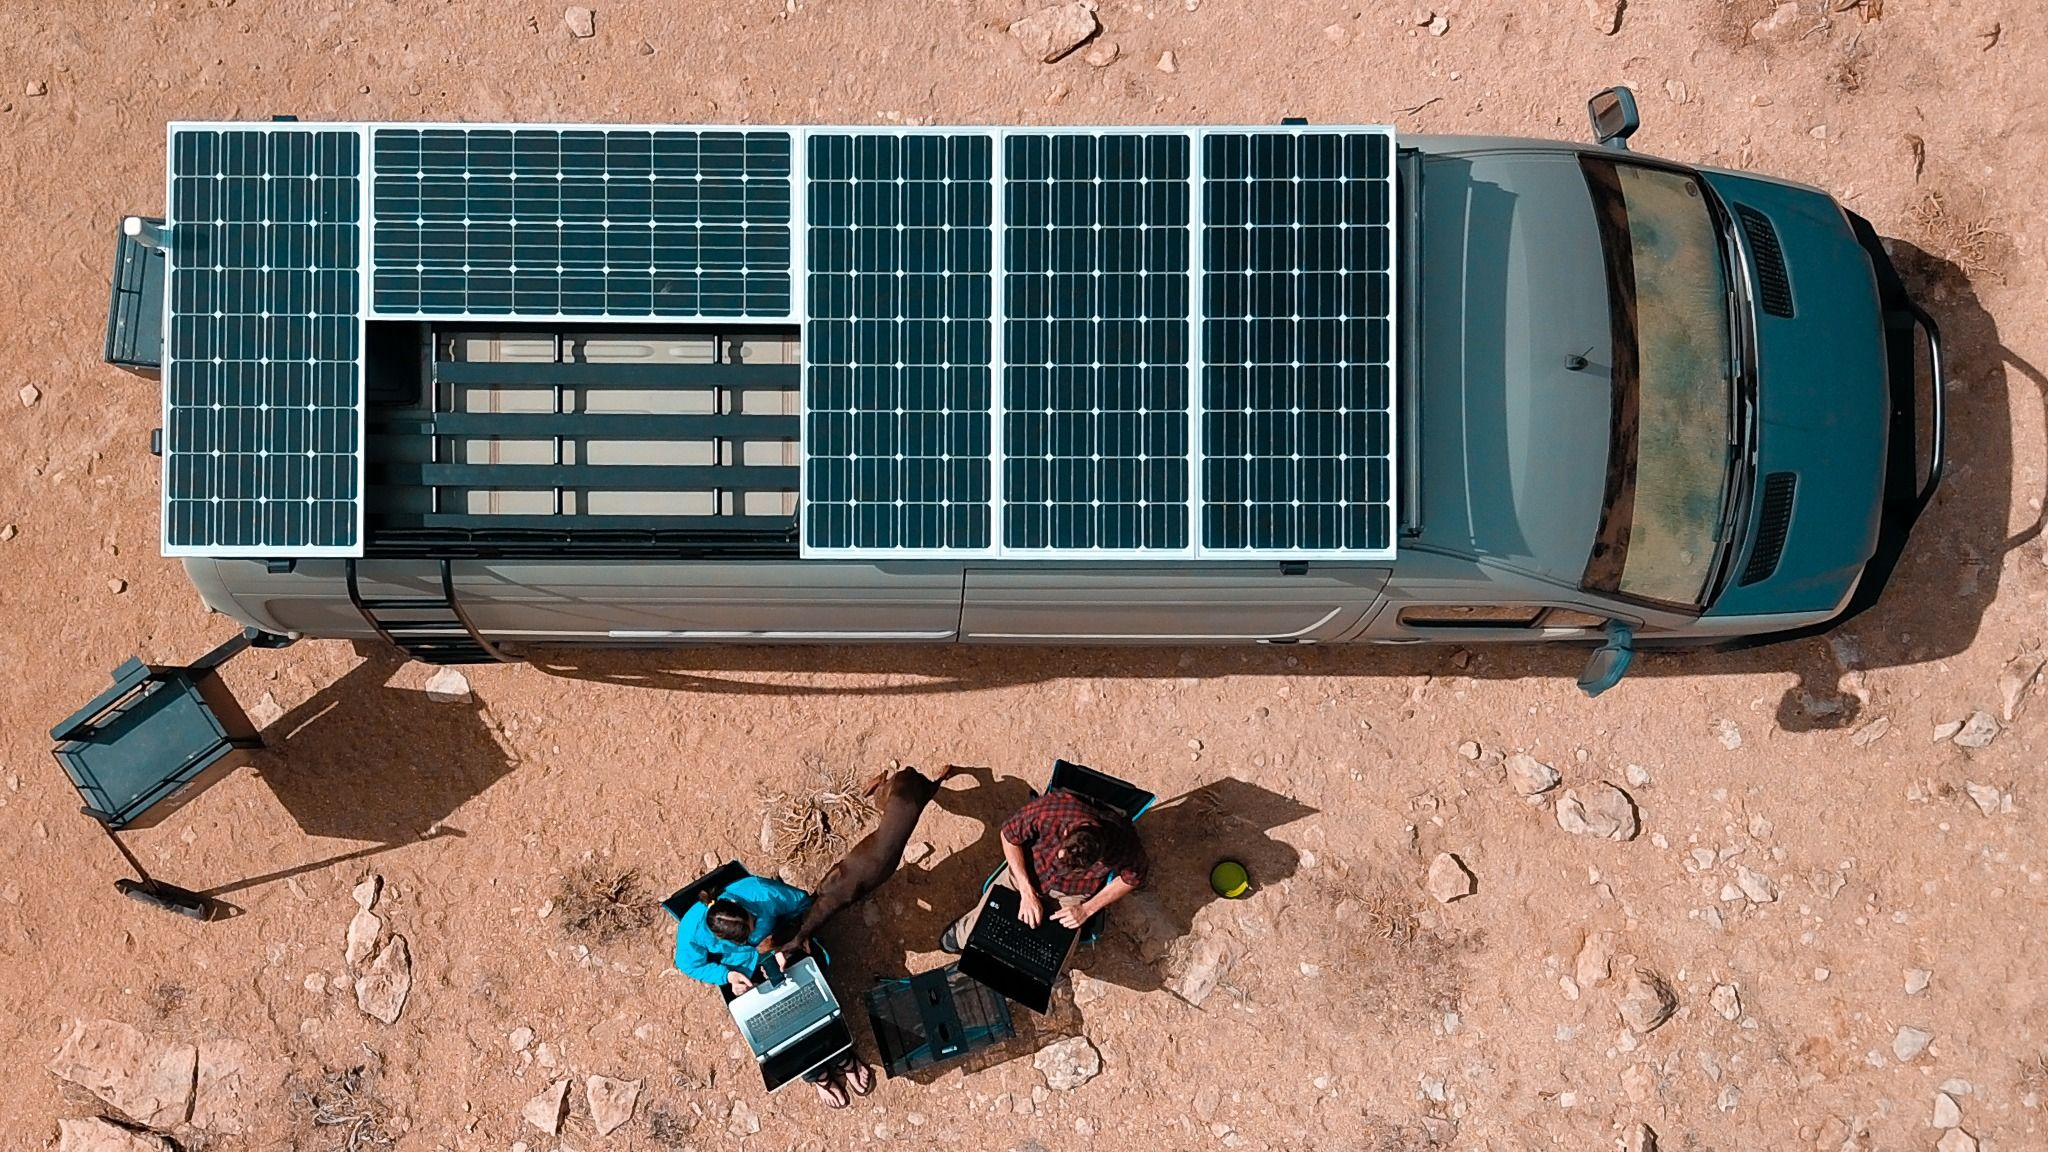 How To Design And Install Solar On A Camper Van Diy Campervan Camper Van Conversion Diy Solar